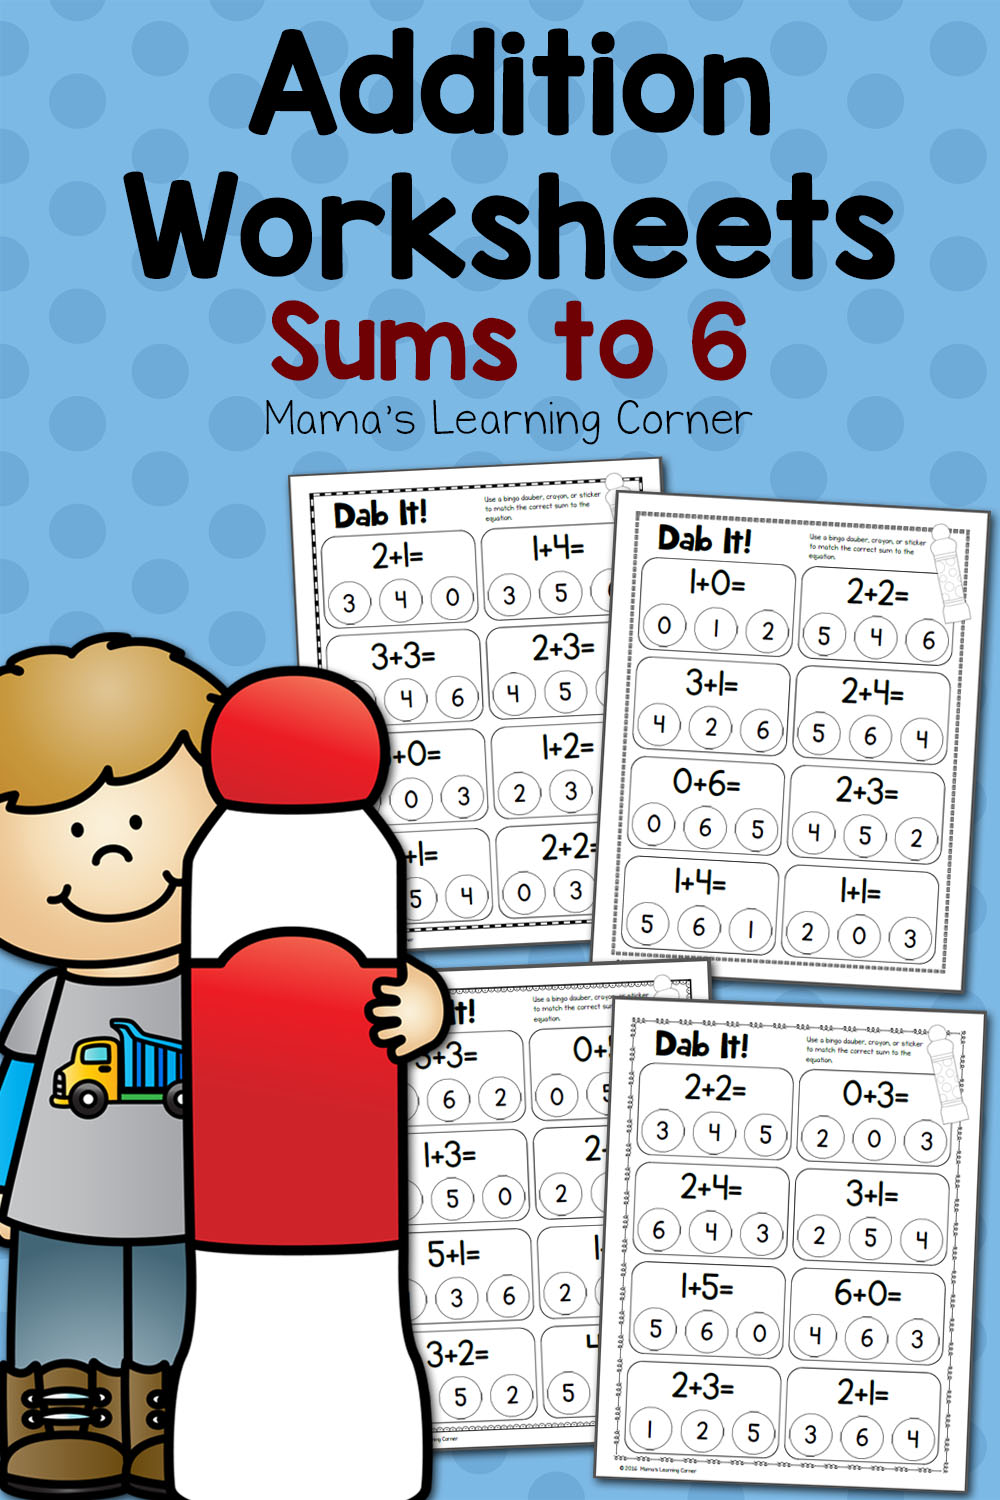 hight resolution of Dab It! Addition Worksheets - Sums to 6 - Mamas Learning Corner